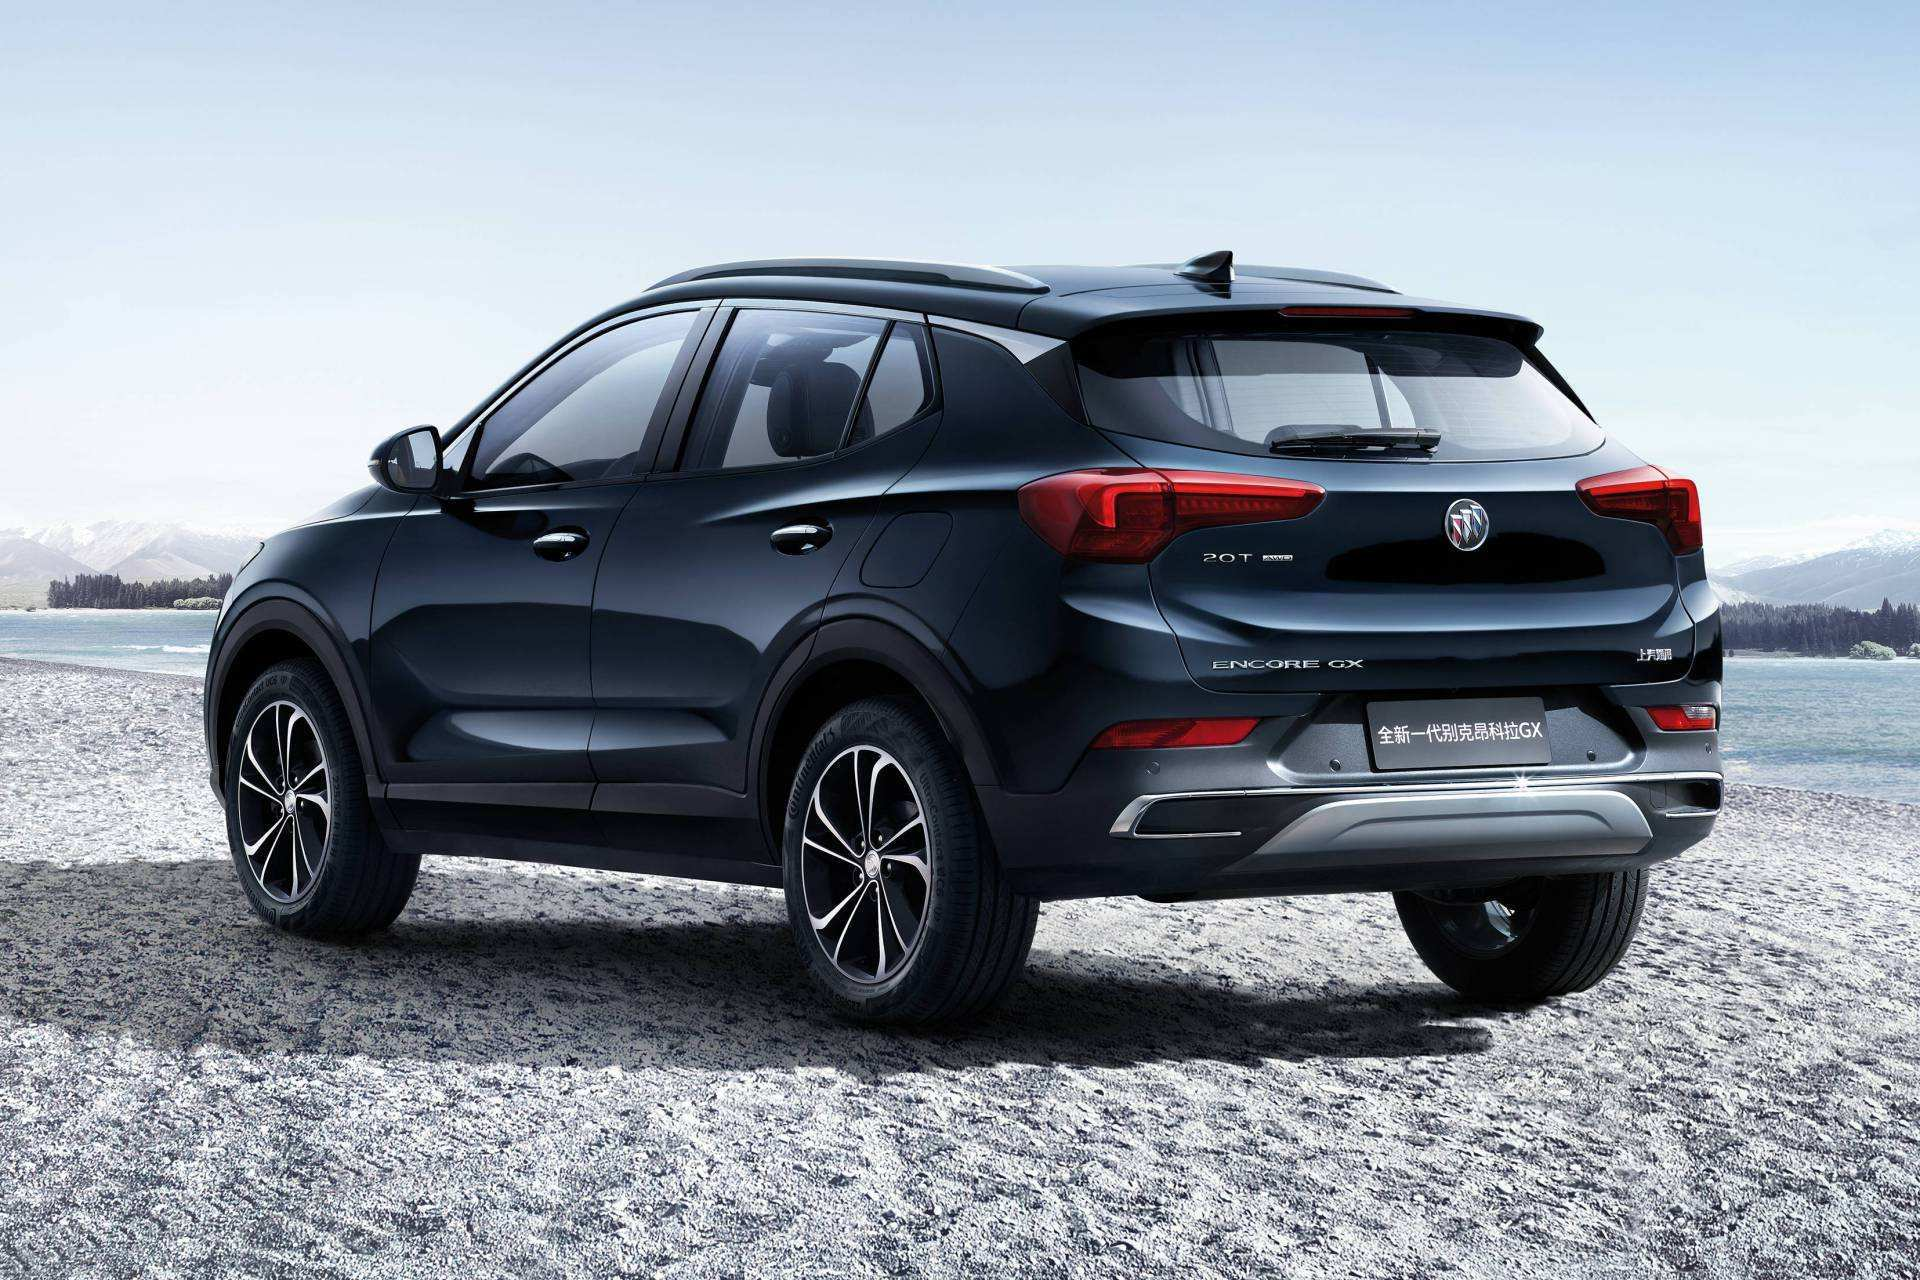 40 Best Review When Does 2020 Buick Encore Come Out History with When Does 2020 Buick Encore Come Out